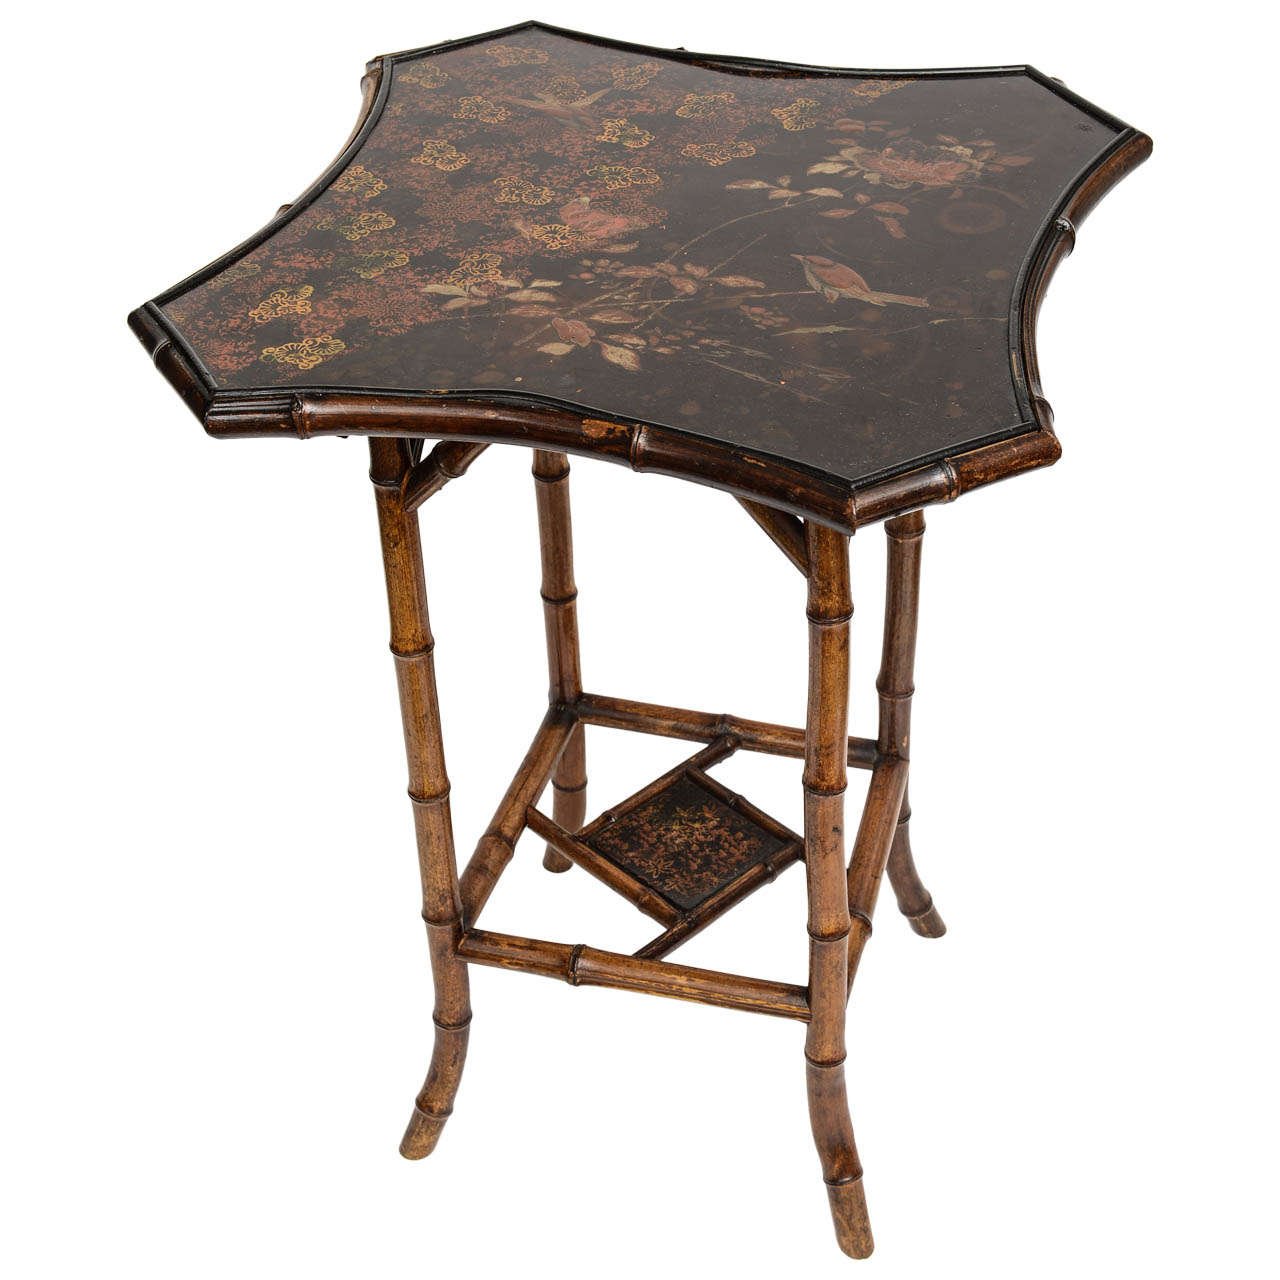 Very Unusual 19th C English Bamboo Table At 1stdibs